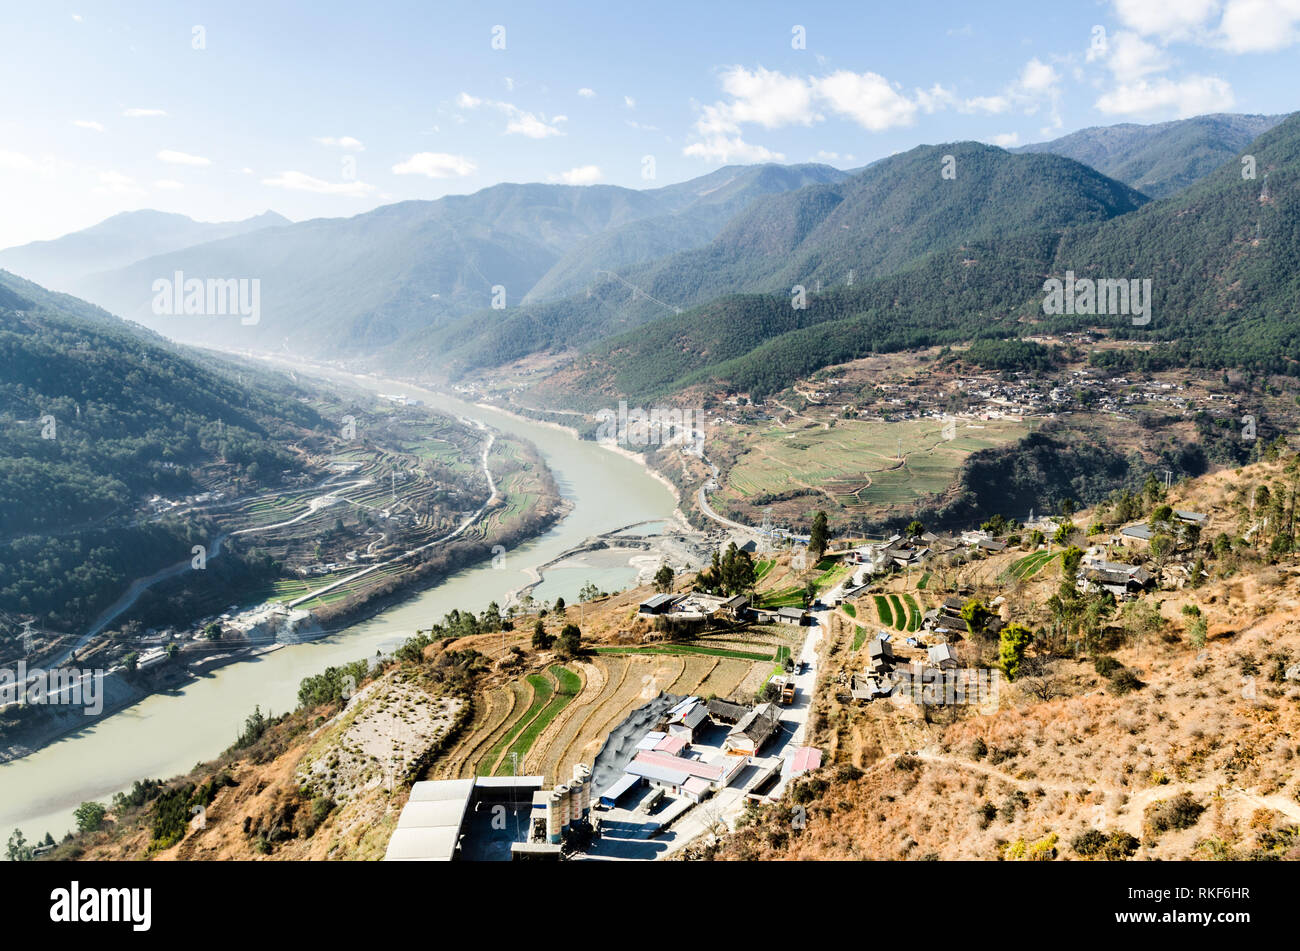 Scenery at the start of the Upper Trail hike in Tiger Leaping gorge, Yunnan, China - Stock Image